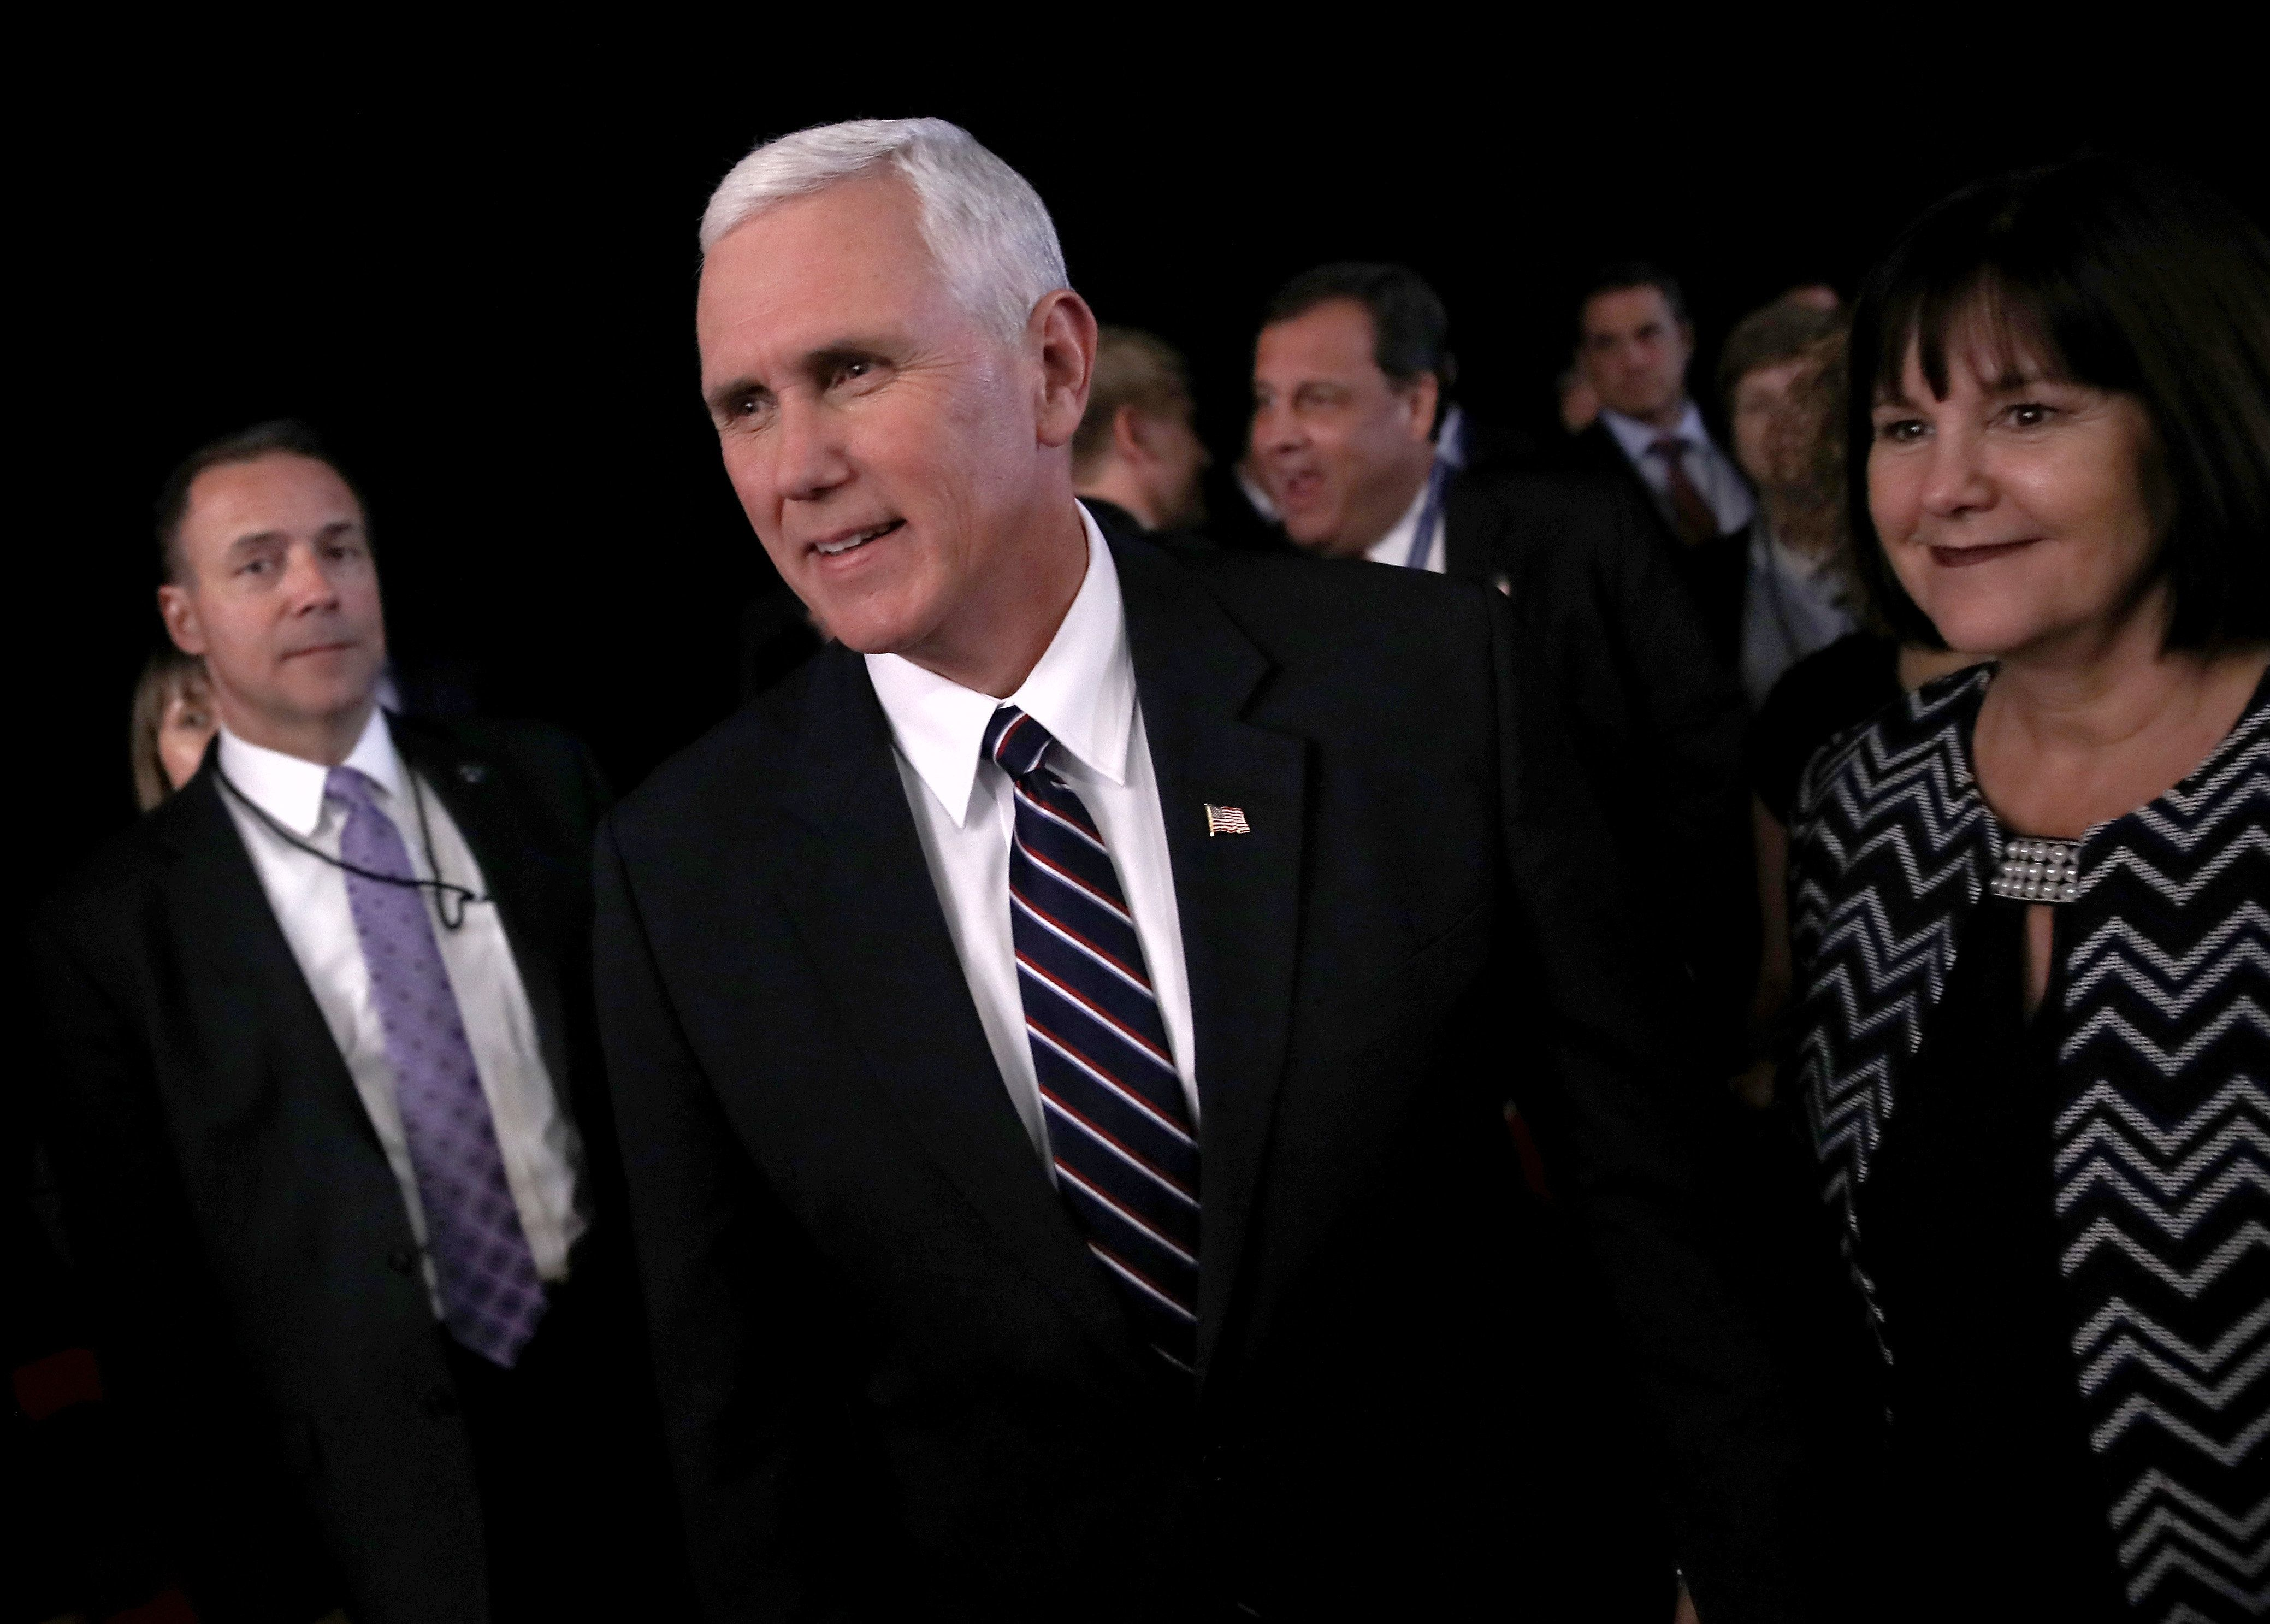 HEMPSTEAD, NY - SEPTEMBER 26:  Republican Vice presidential nominee Mike Pence (C) attends the Presidential Debate at Hofstra University on September 26, 2016 in Hempstead, New York.  The first of four debates for the 2016 Election, three Presidential and one Vice Presidential, is moderated by NBC's Lester Holt.  (Photo by Win McNamee/Getty Images)